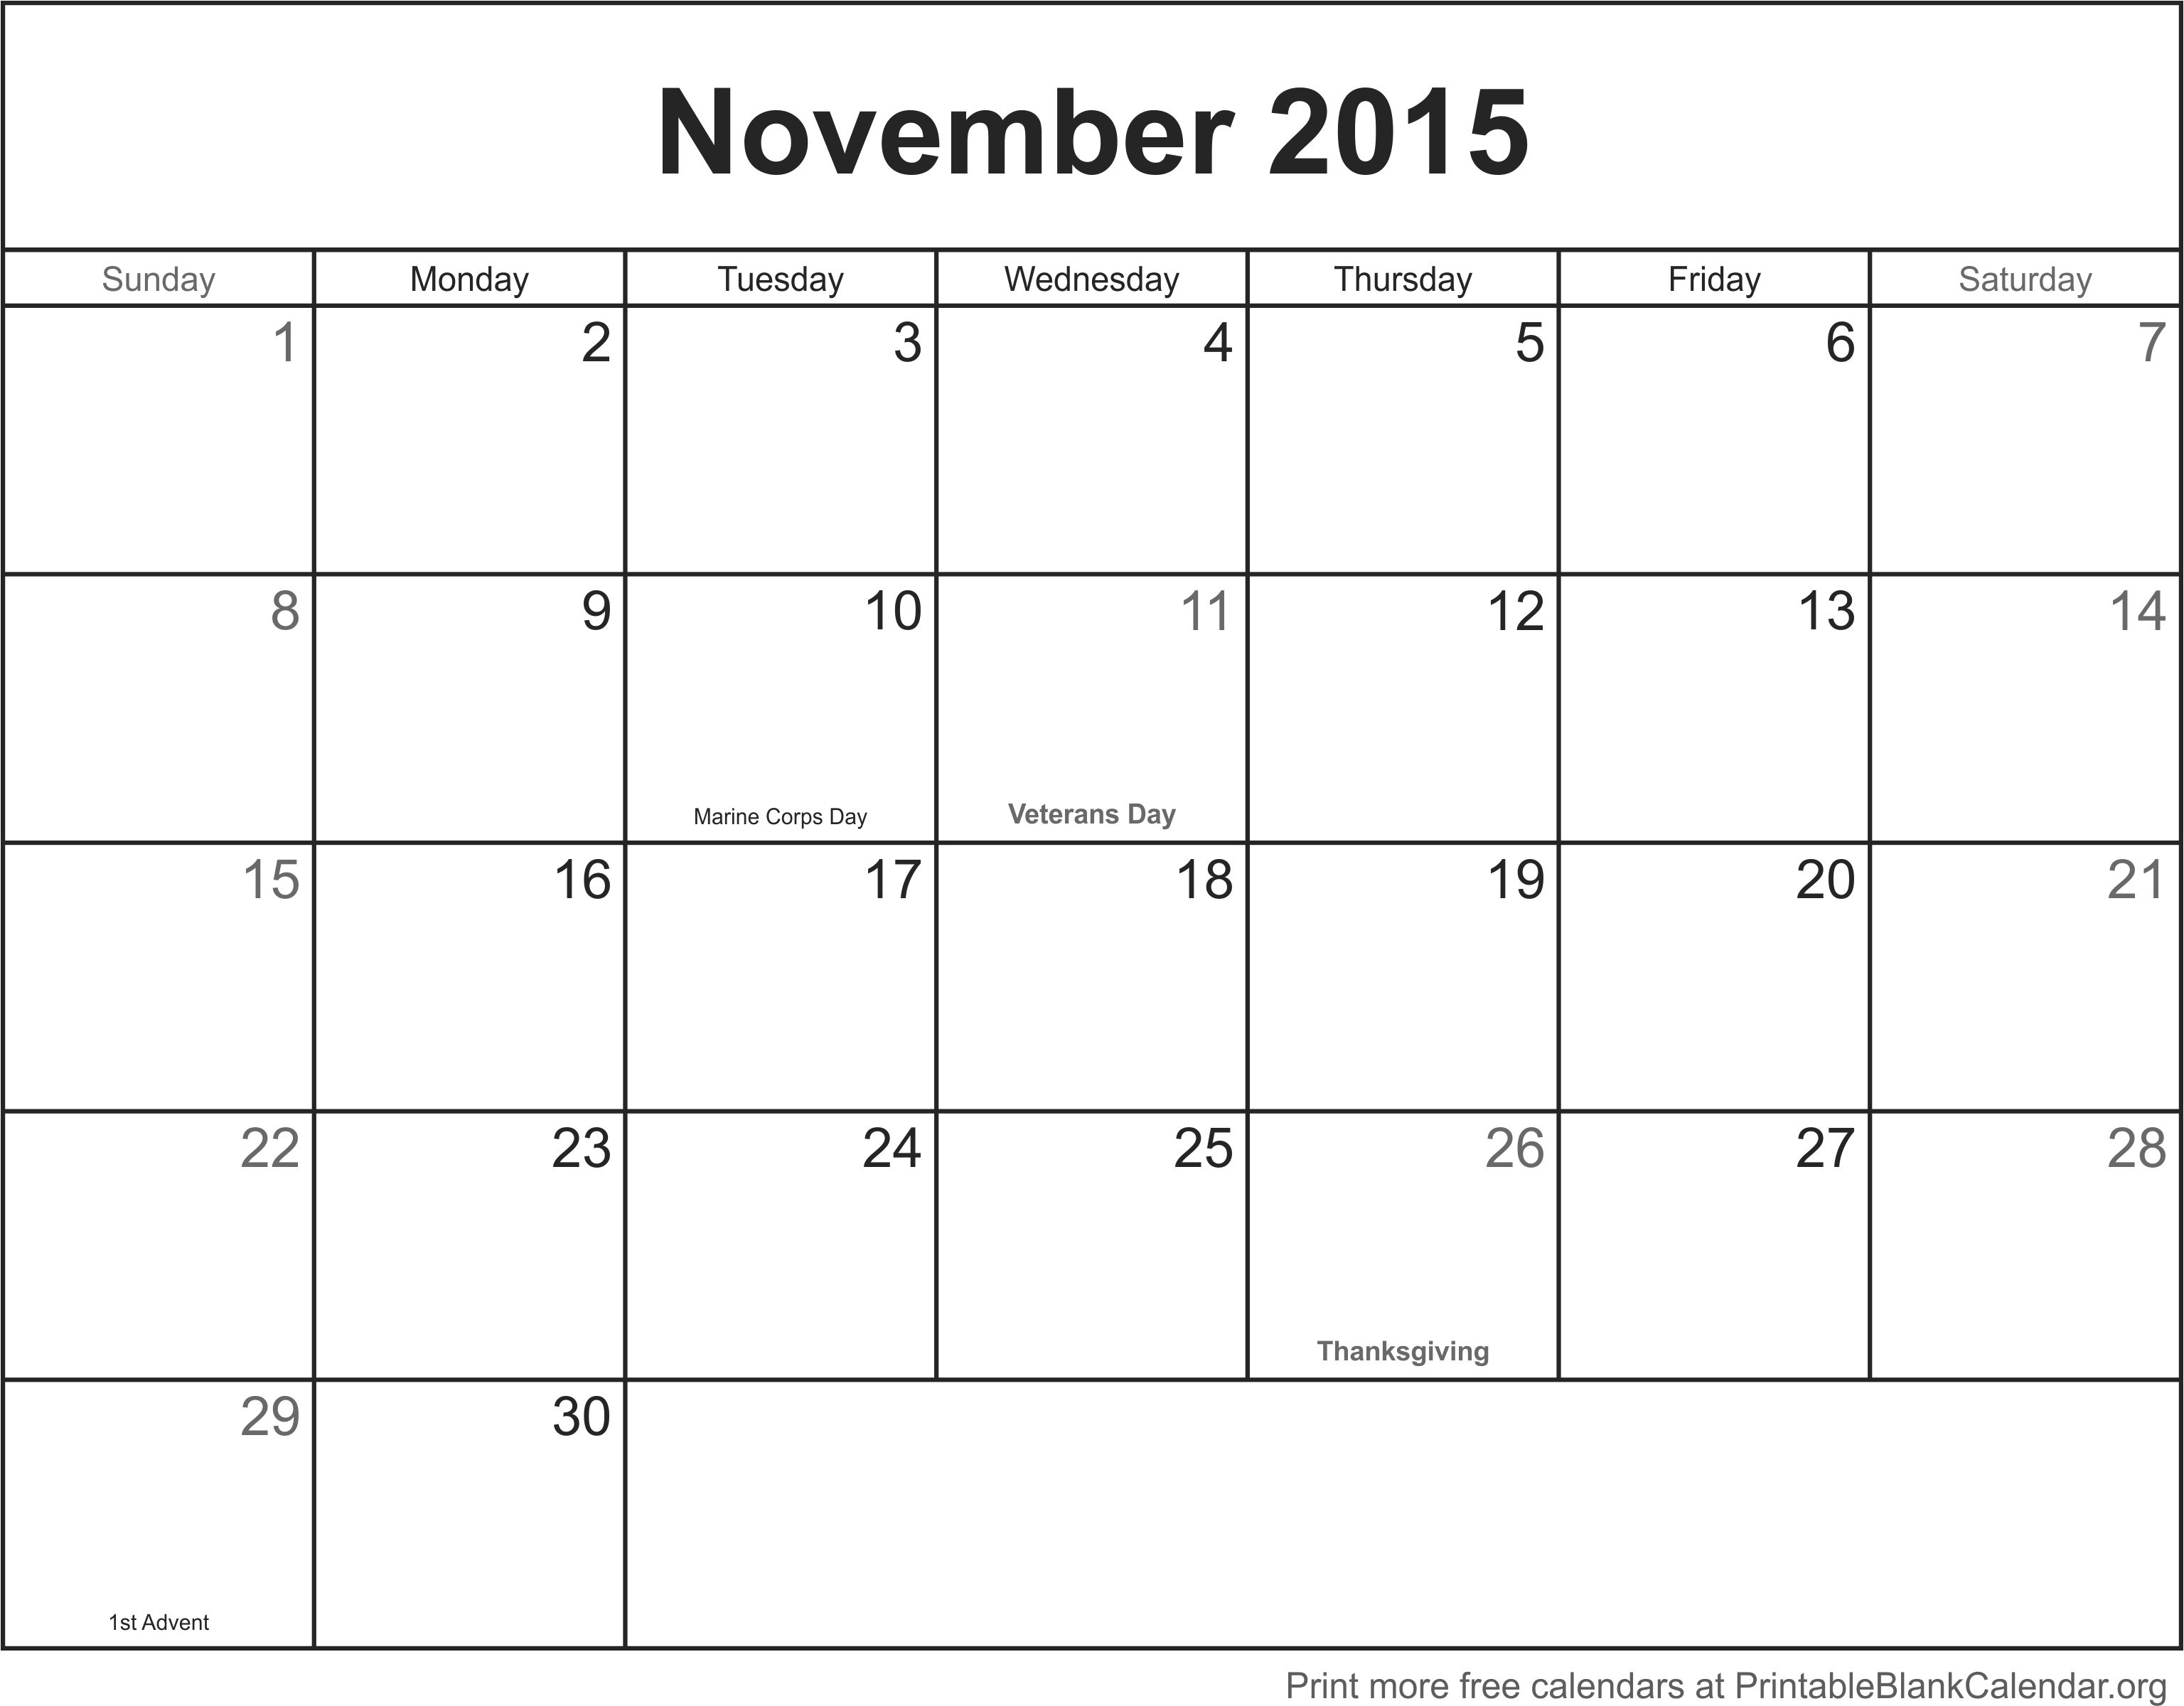 australian calendar template 2015 - search results for printable blank 2015 calendar by month